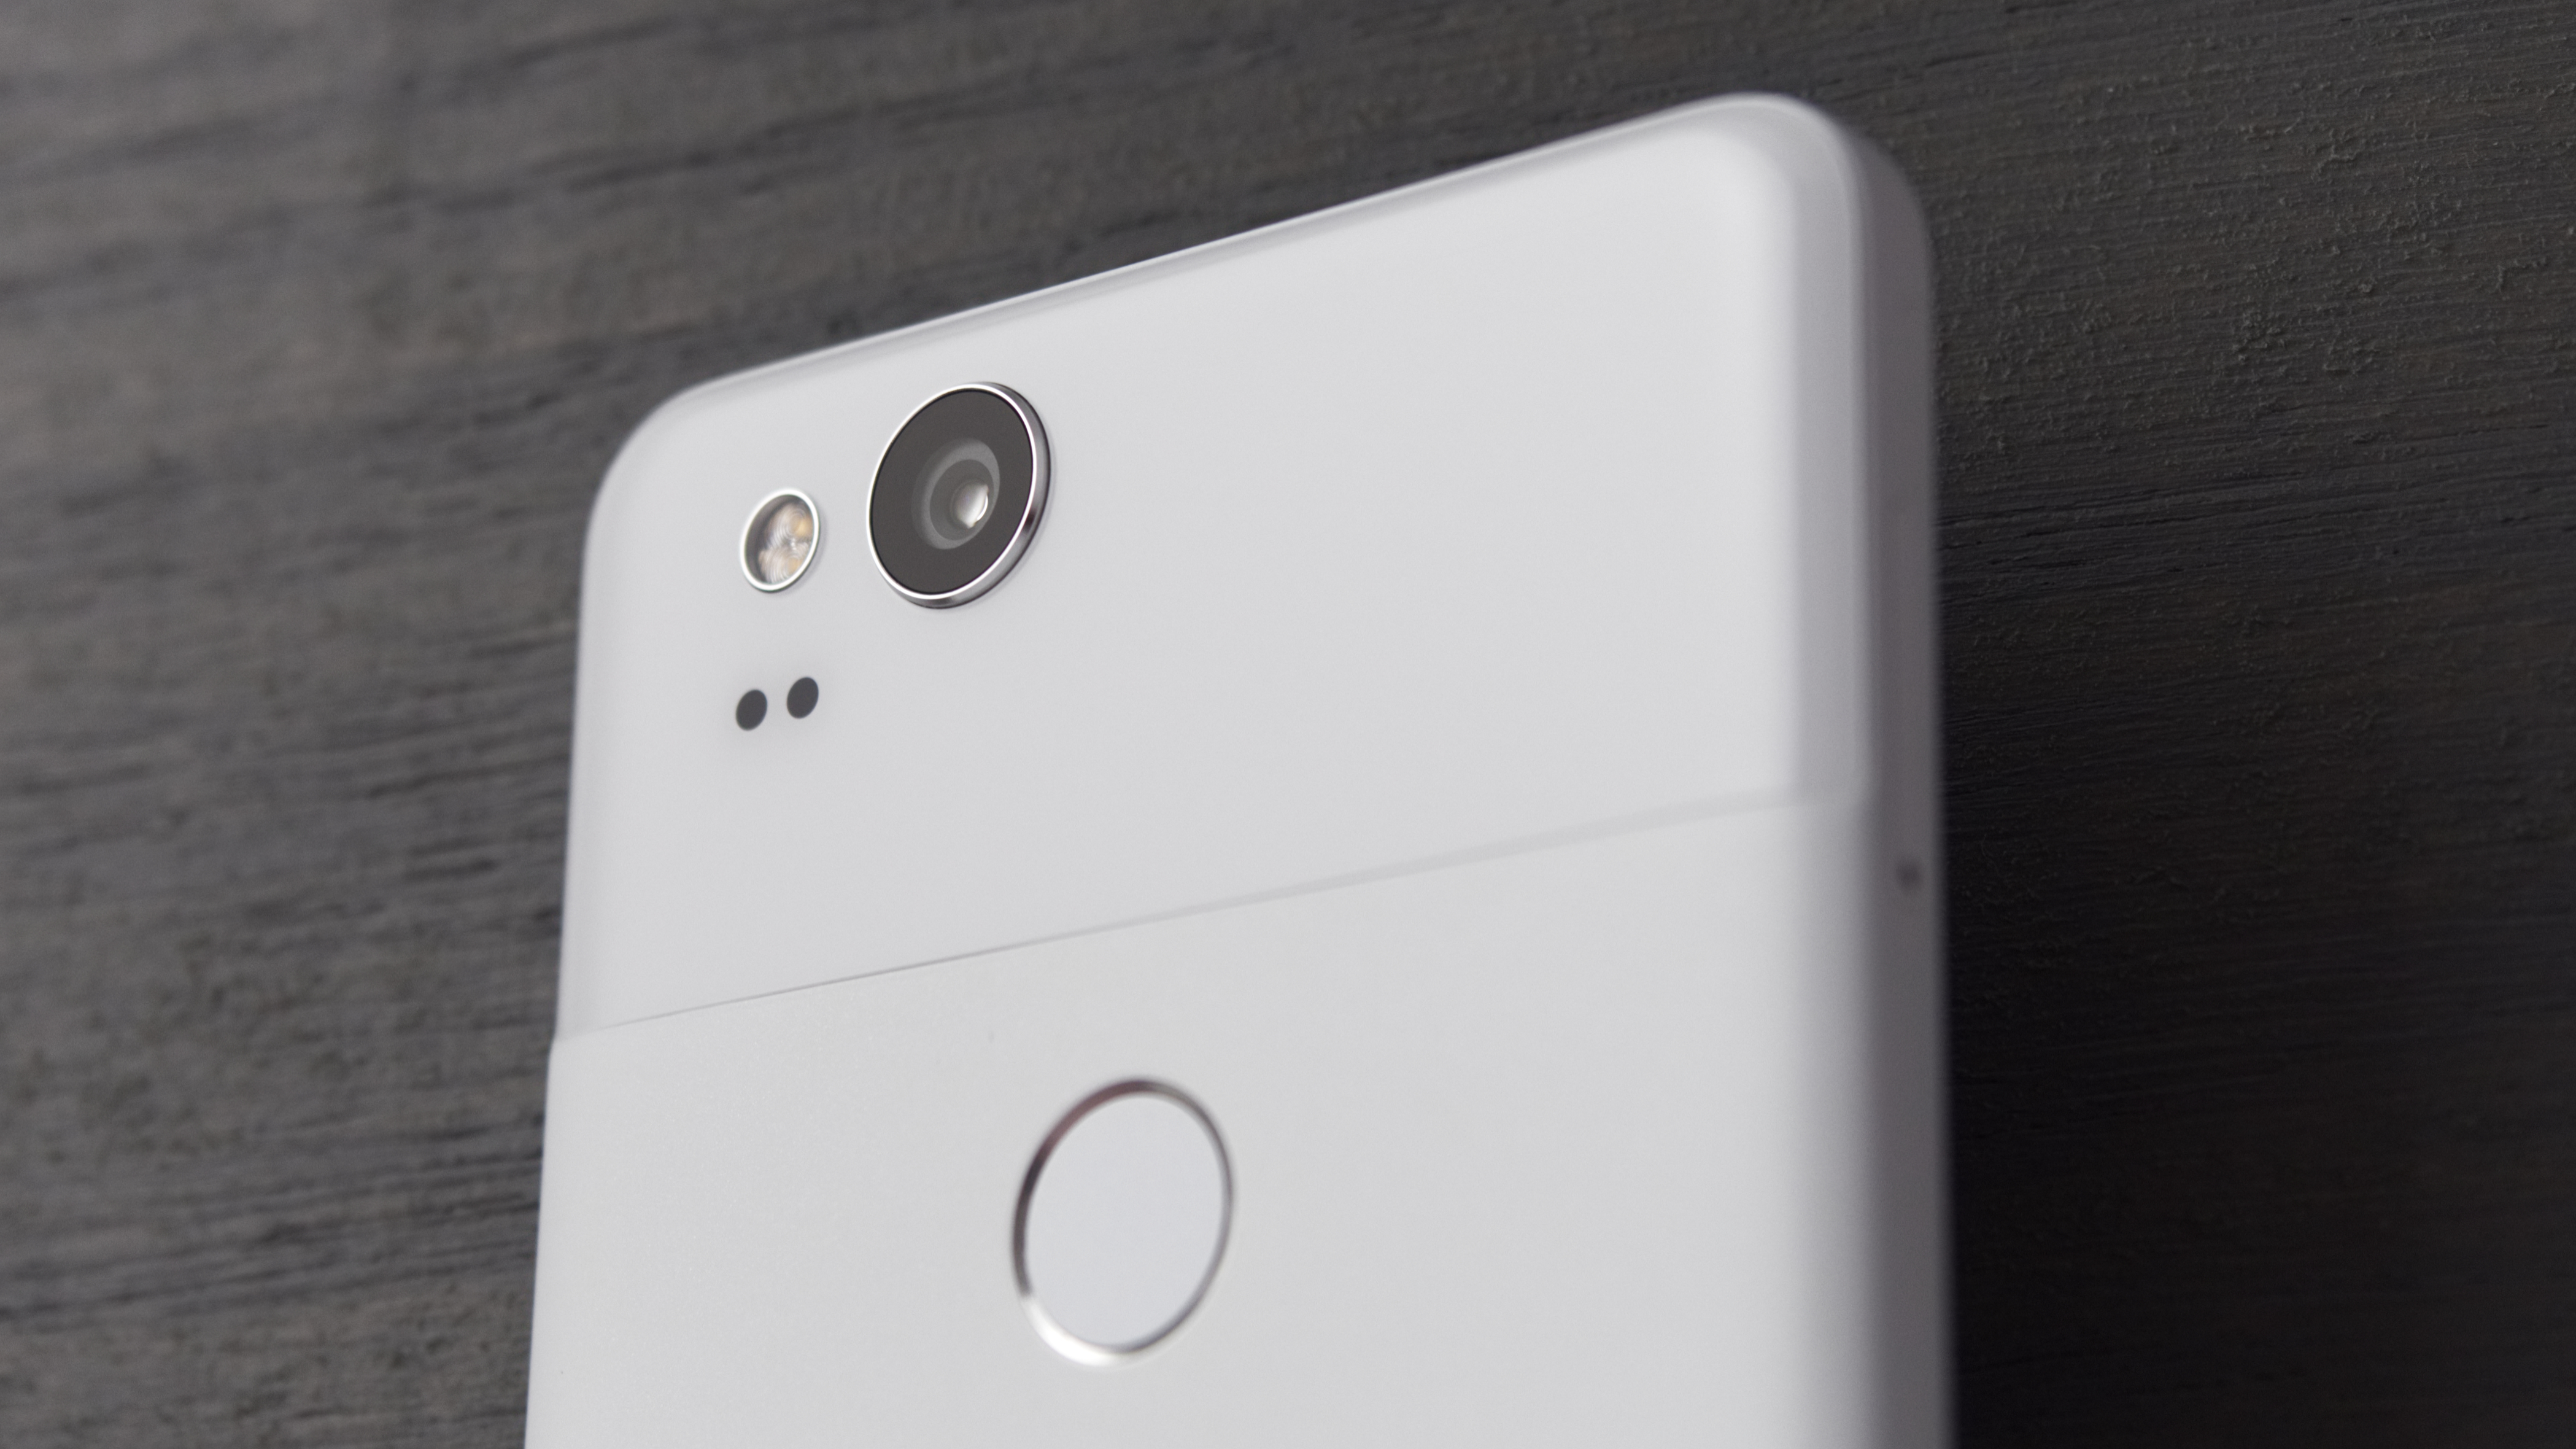 Pixel 3 XL set to have wireless charging, but you'll have to buy your own charger 1